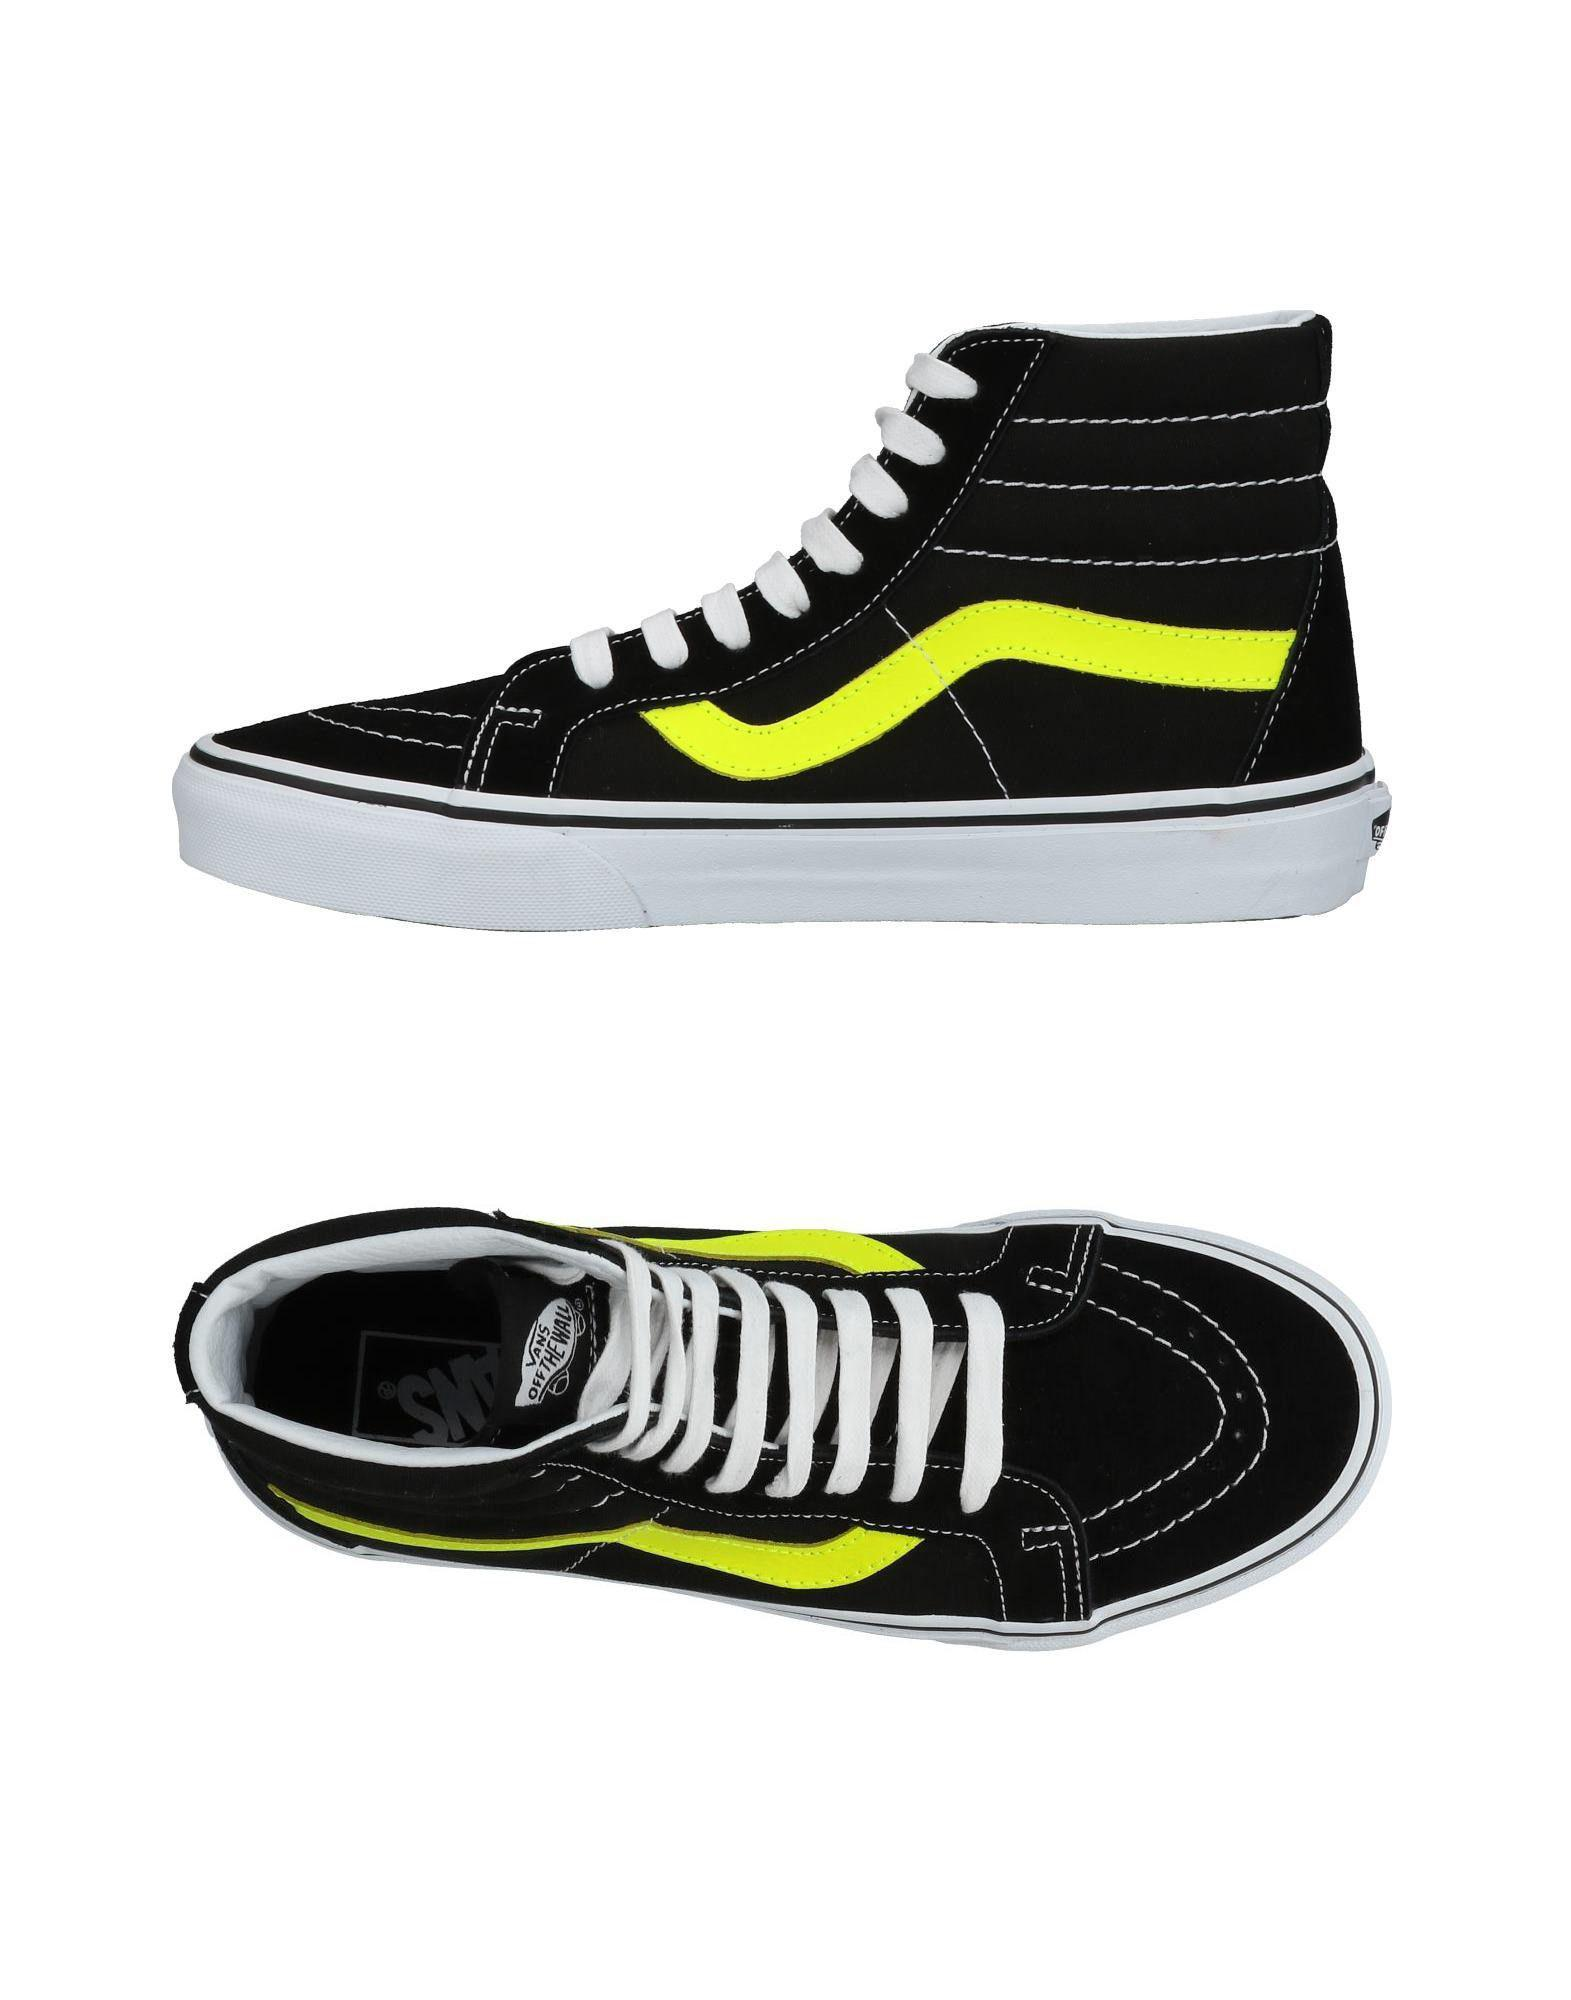 Vans High-tops & Sneakers in Black for Men - Lyst